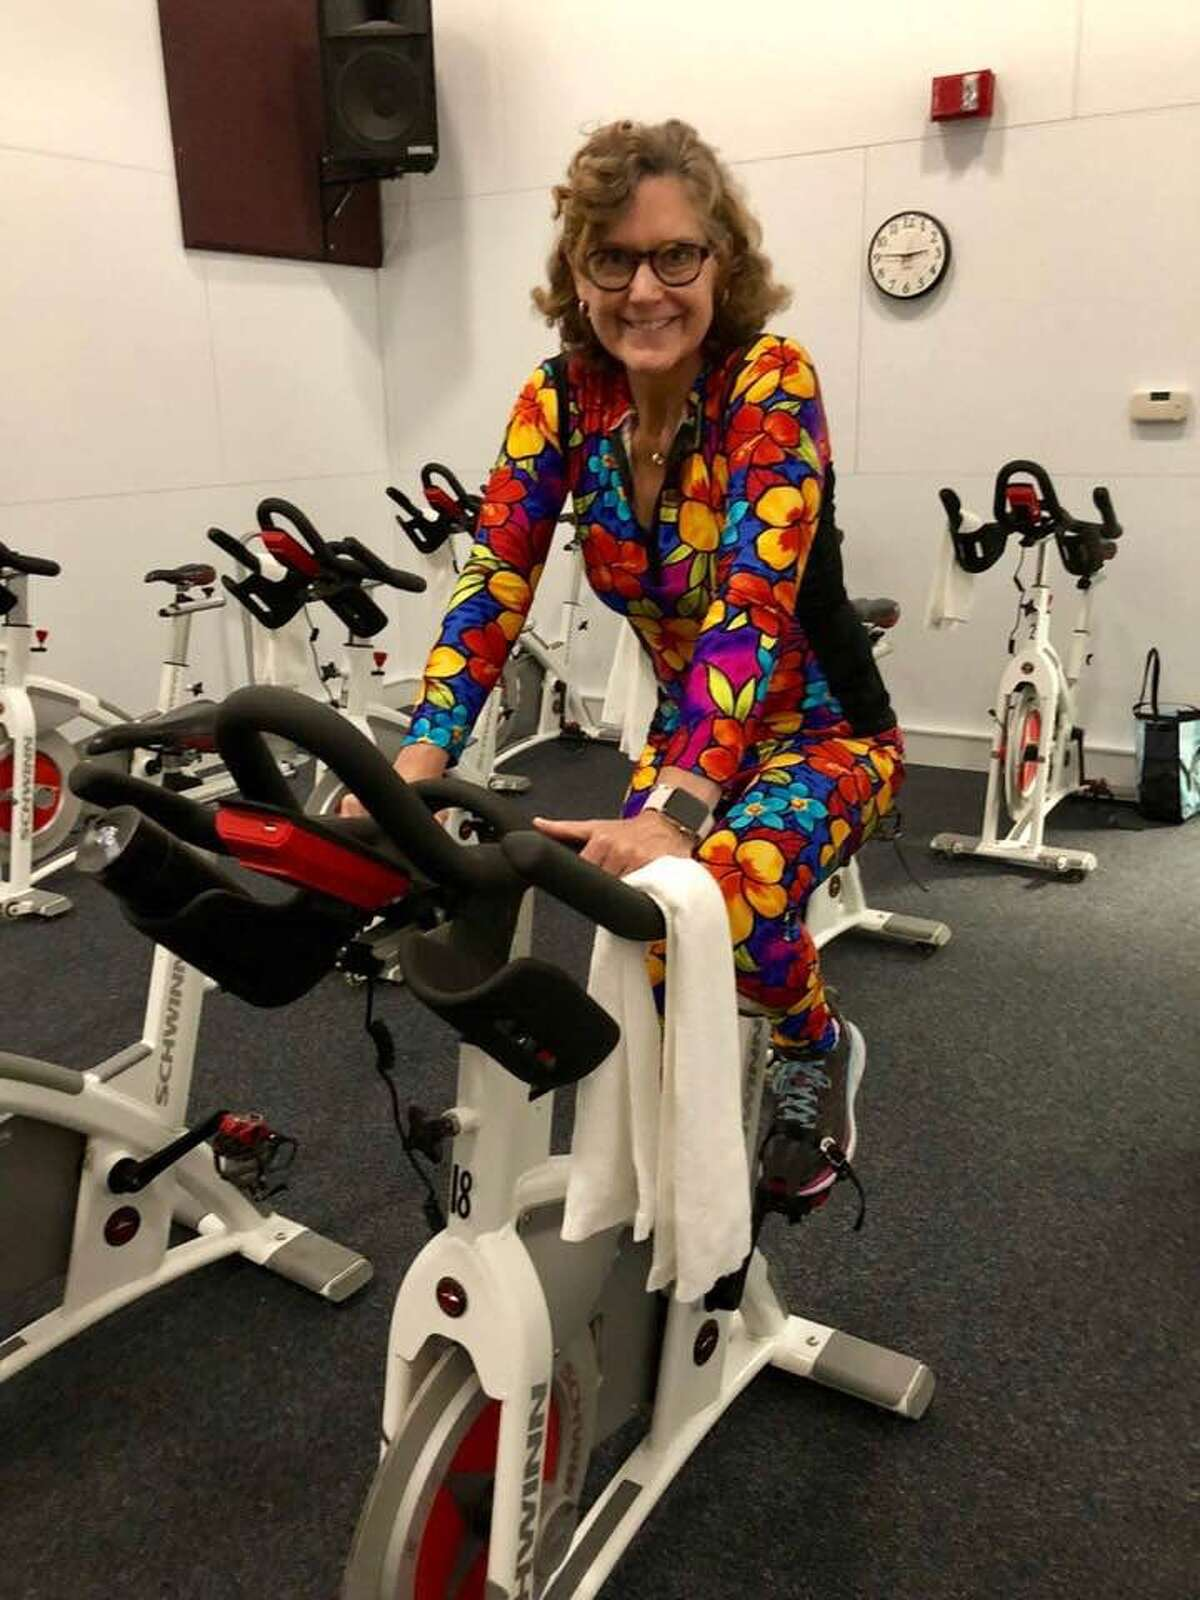 Ridgefield resident Marion Roth pedals on a stationary bike wearing workout clothes that she designed and made. Roth was diagnosed with a rare type of ovarian cancer in October 2016. She was successfully treated at The Praxair Cancer Center, part of Danbury Hospital. As part of National Ovarian Cancer Awareness Month this September, Roth is telling her story.